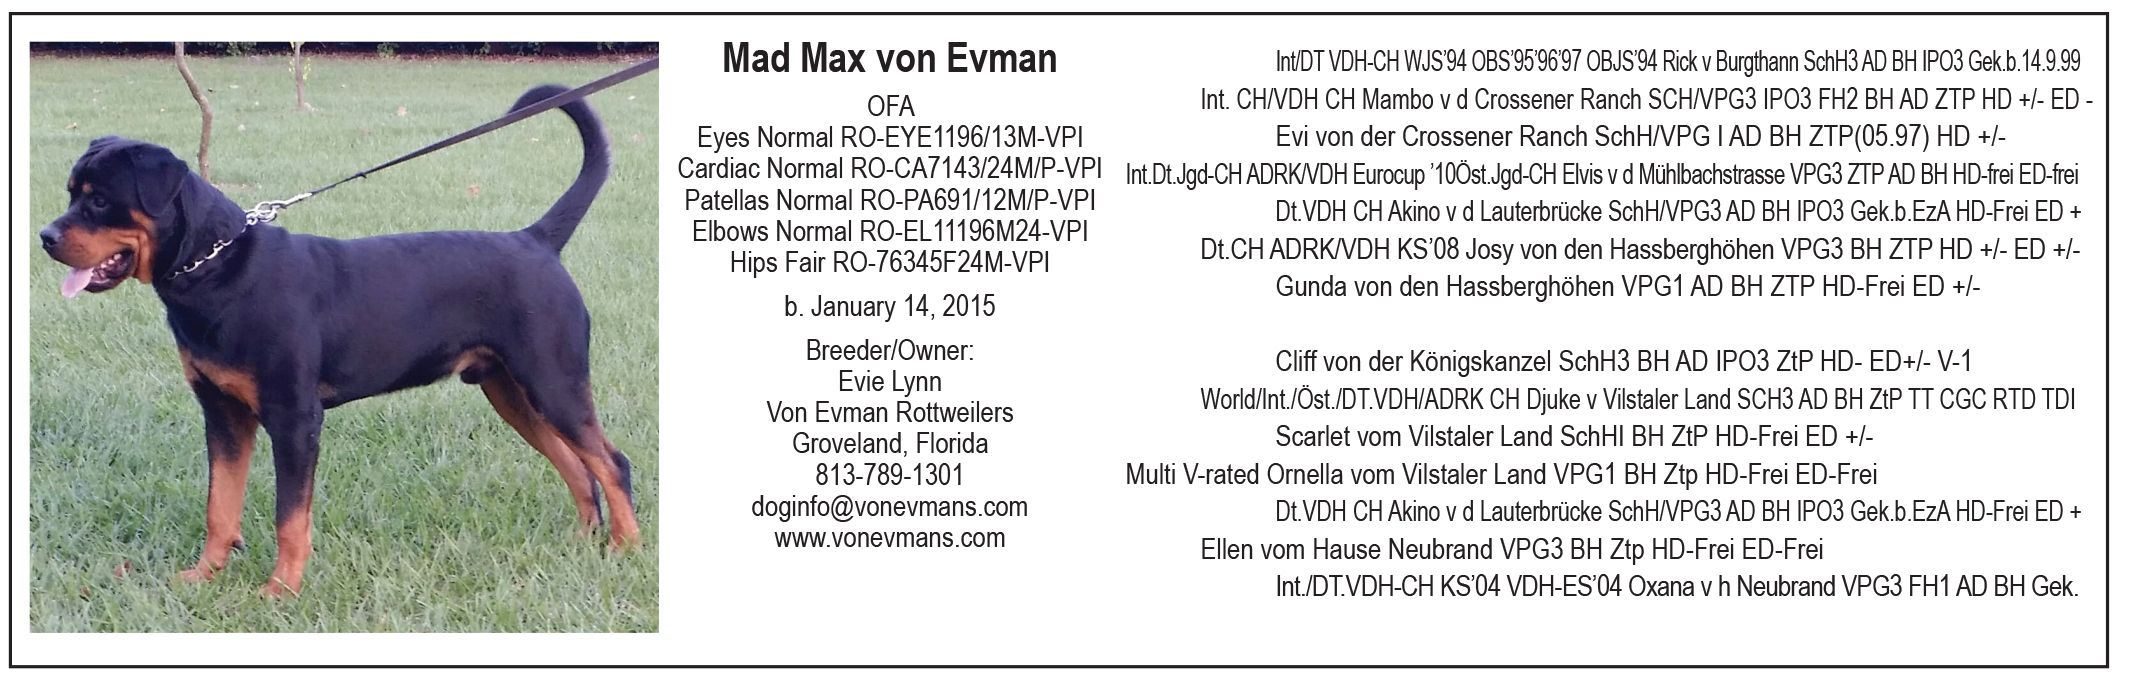 Available At Stud Mad Max Von Evman Ofa Eyes Normal Cardiac Normal